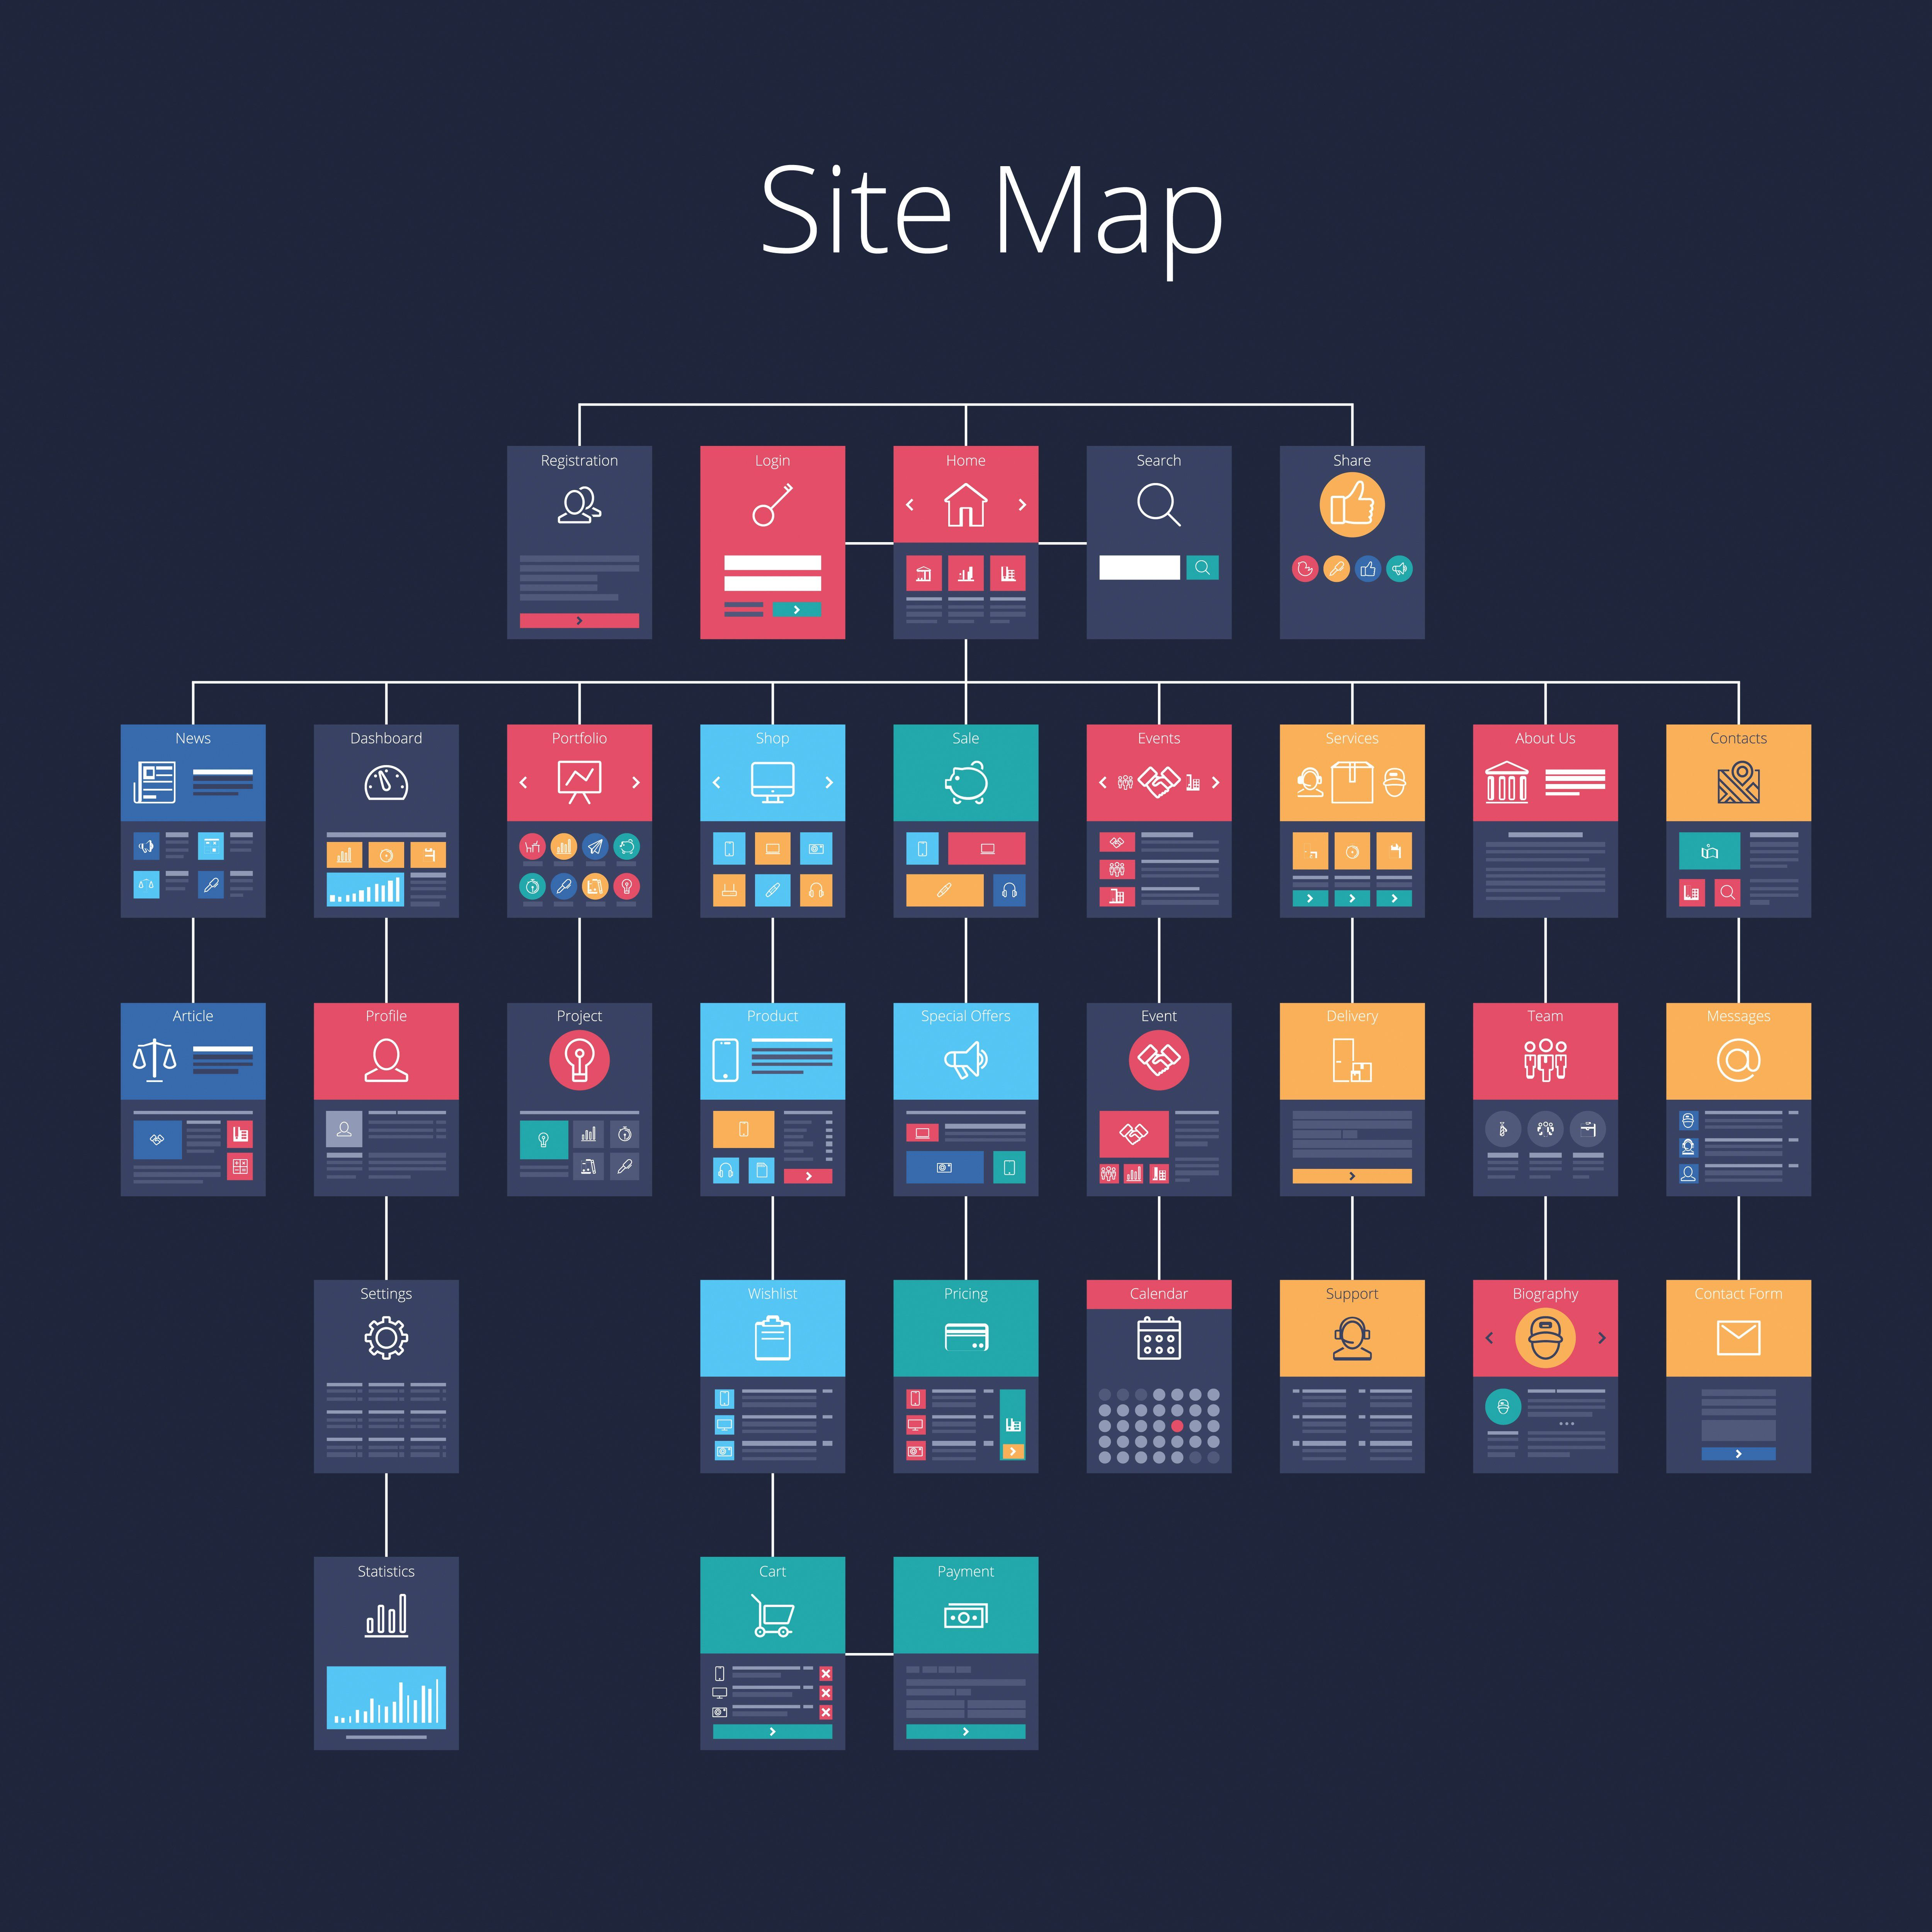 This Is The Best Site Structure In 2019 According To Google Website Structure Web Design Web Development Design